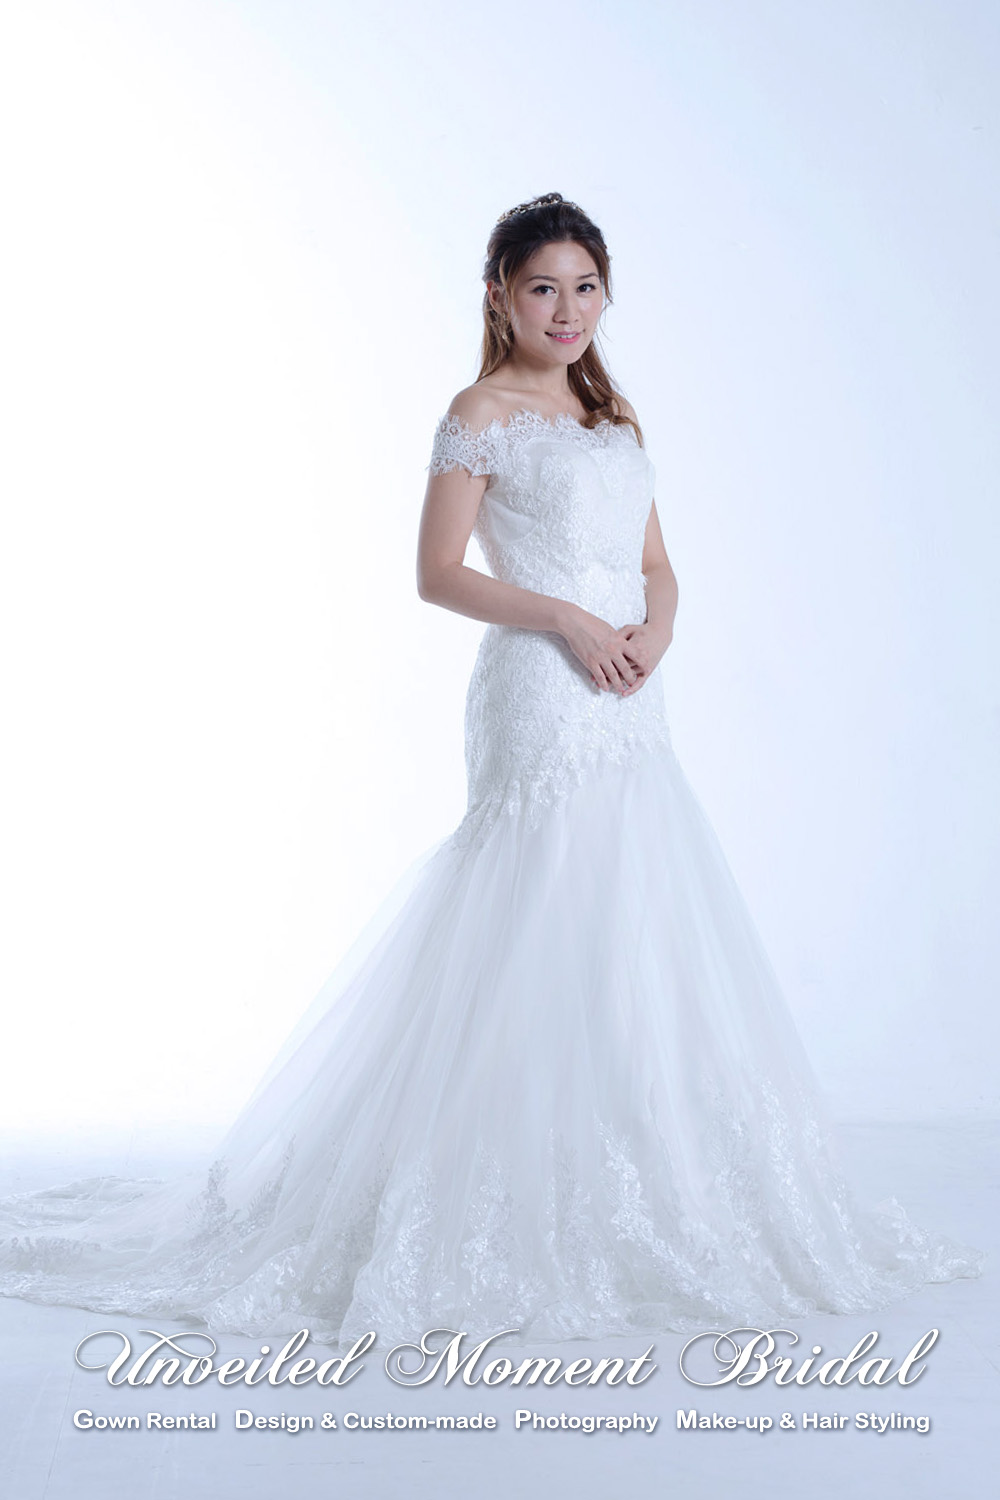 Off-the shoulder trumpet wedding dress with sweet-heart neckline, embellished with beaded lace appliques and decorative waist belt 一字膊, 心型胸, 蕾絲釘珠花邊, 喇叭款婚紗